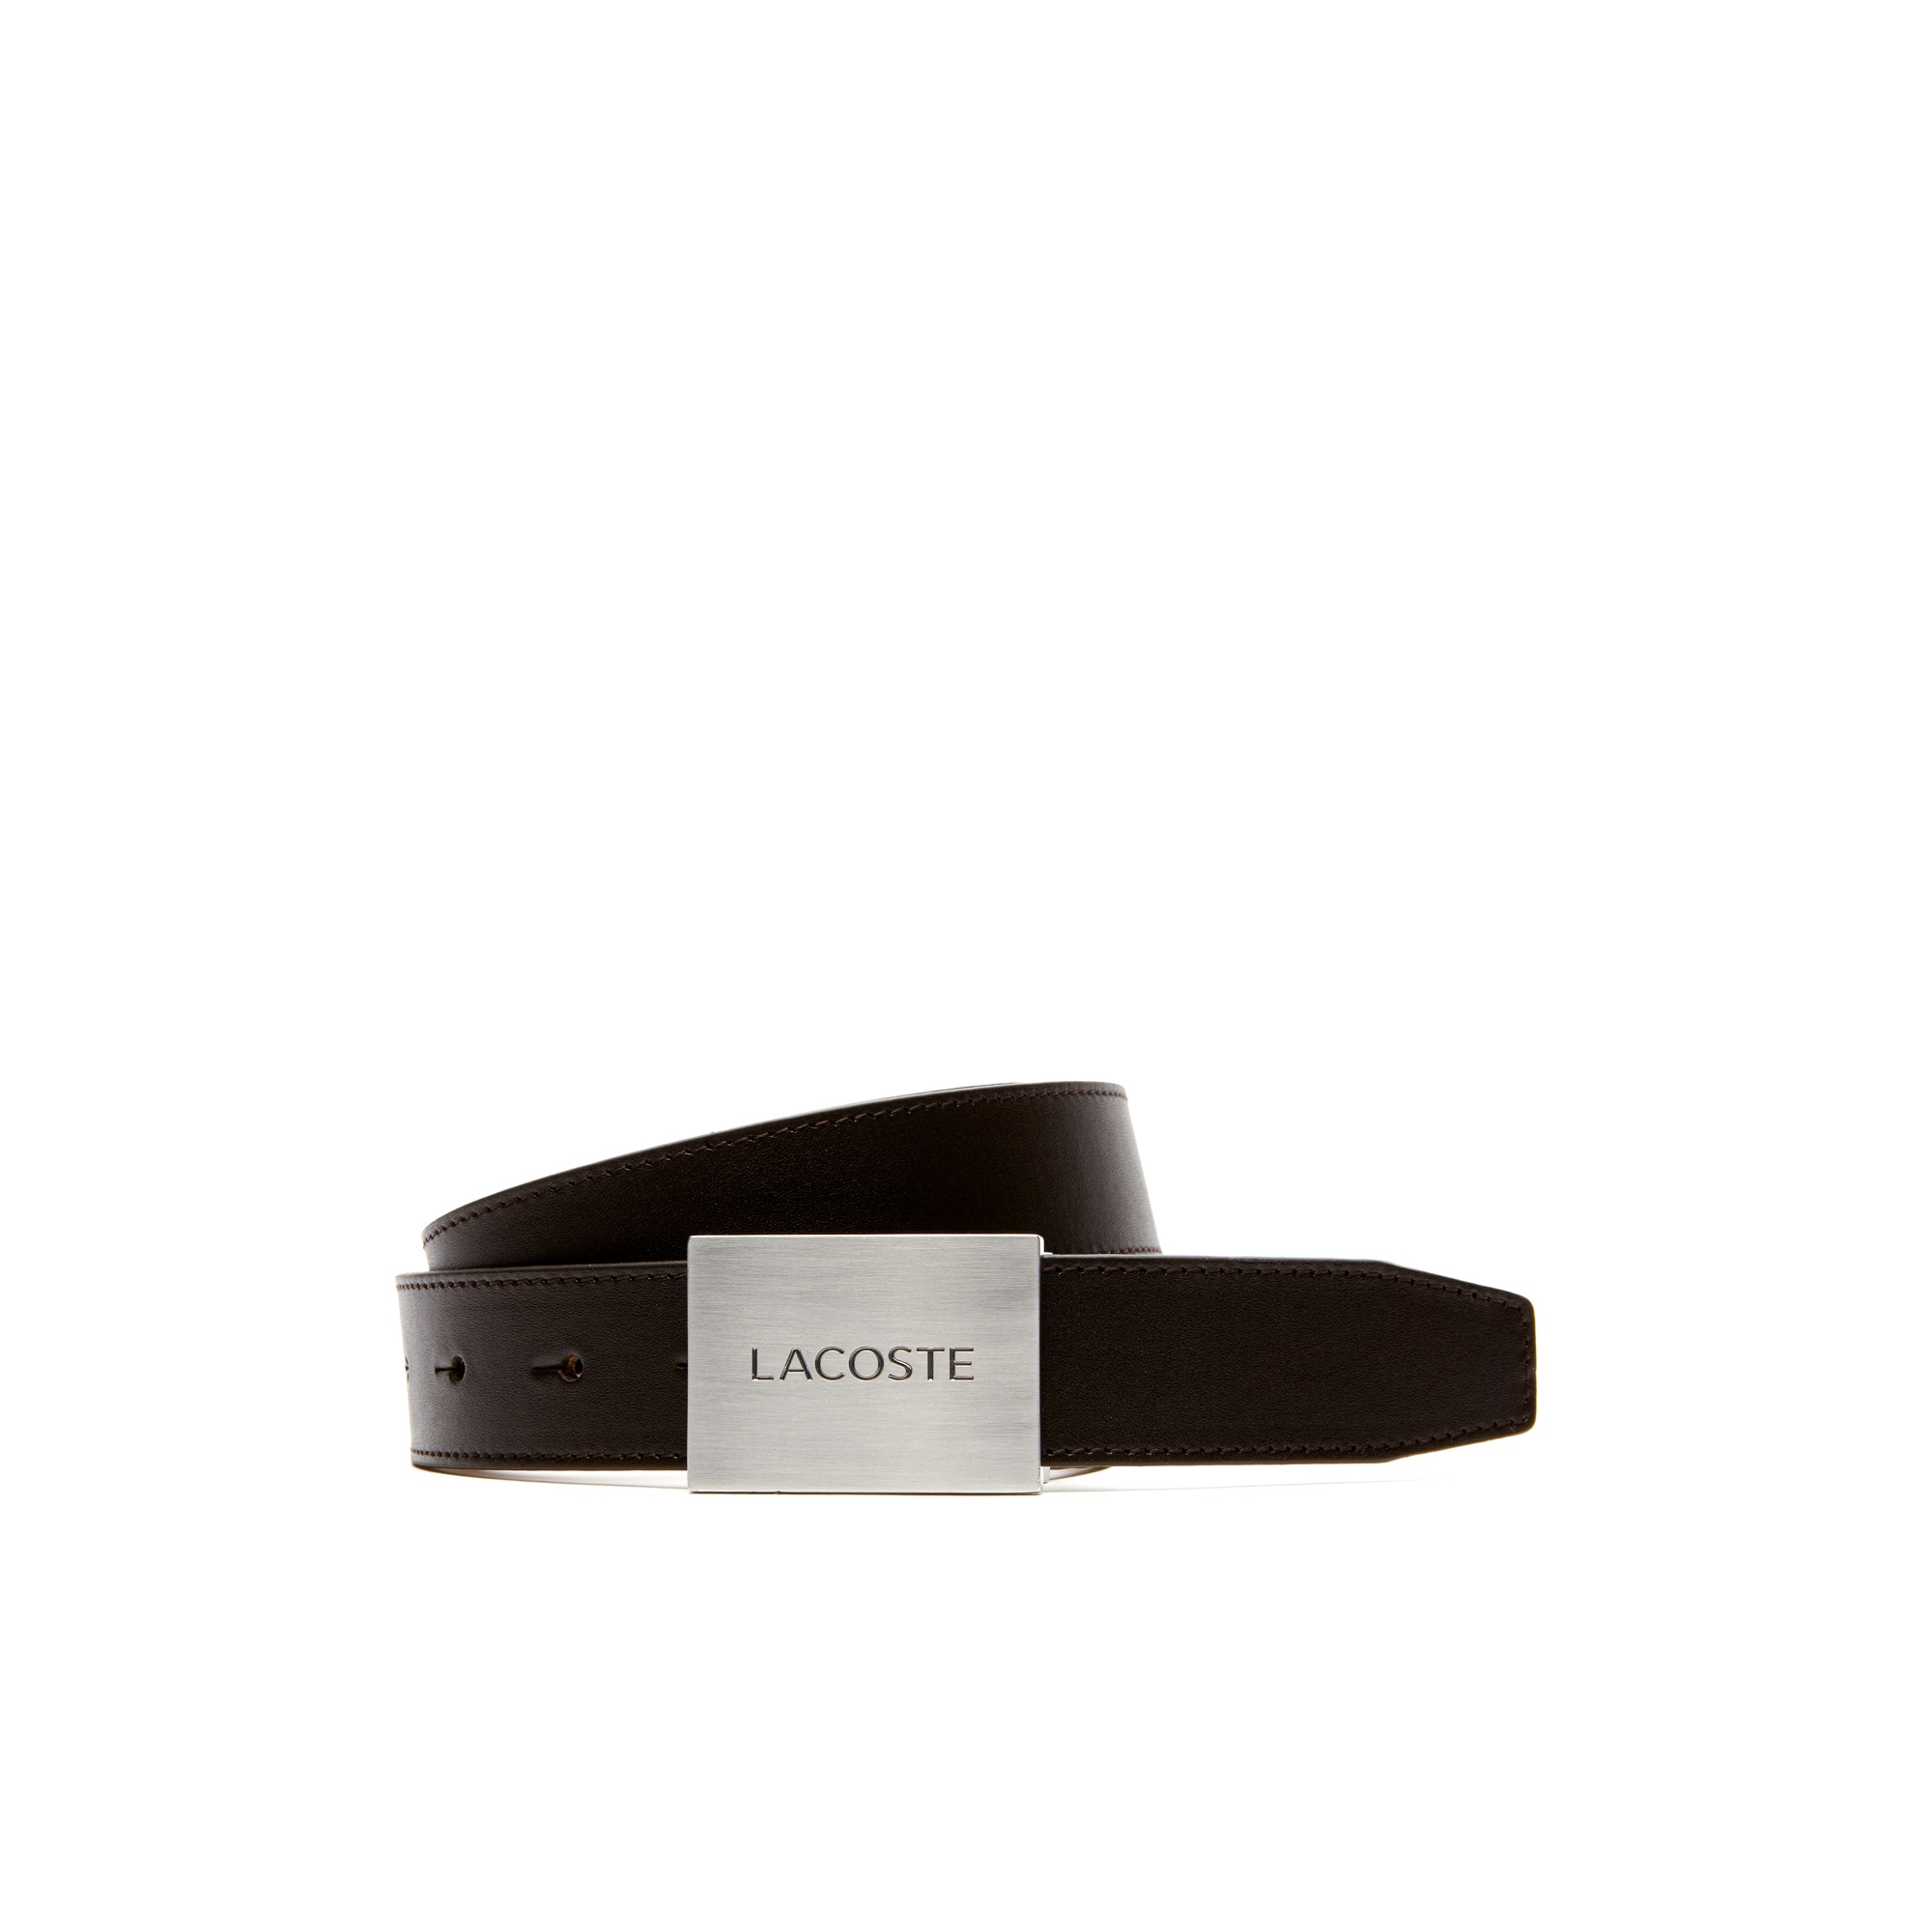 Men's Smooth Leather Belt With Lacoste Engraved Plate Buckle